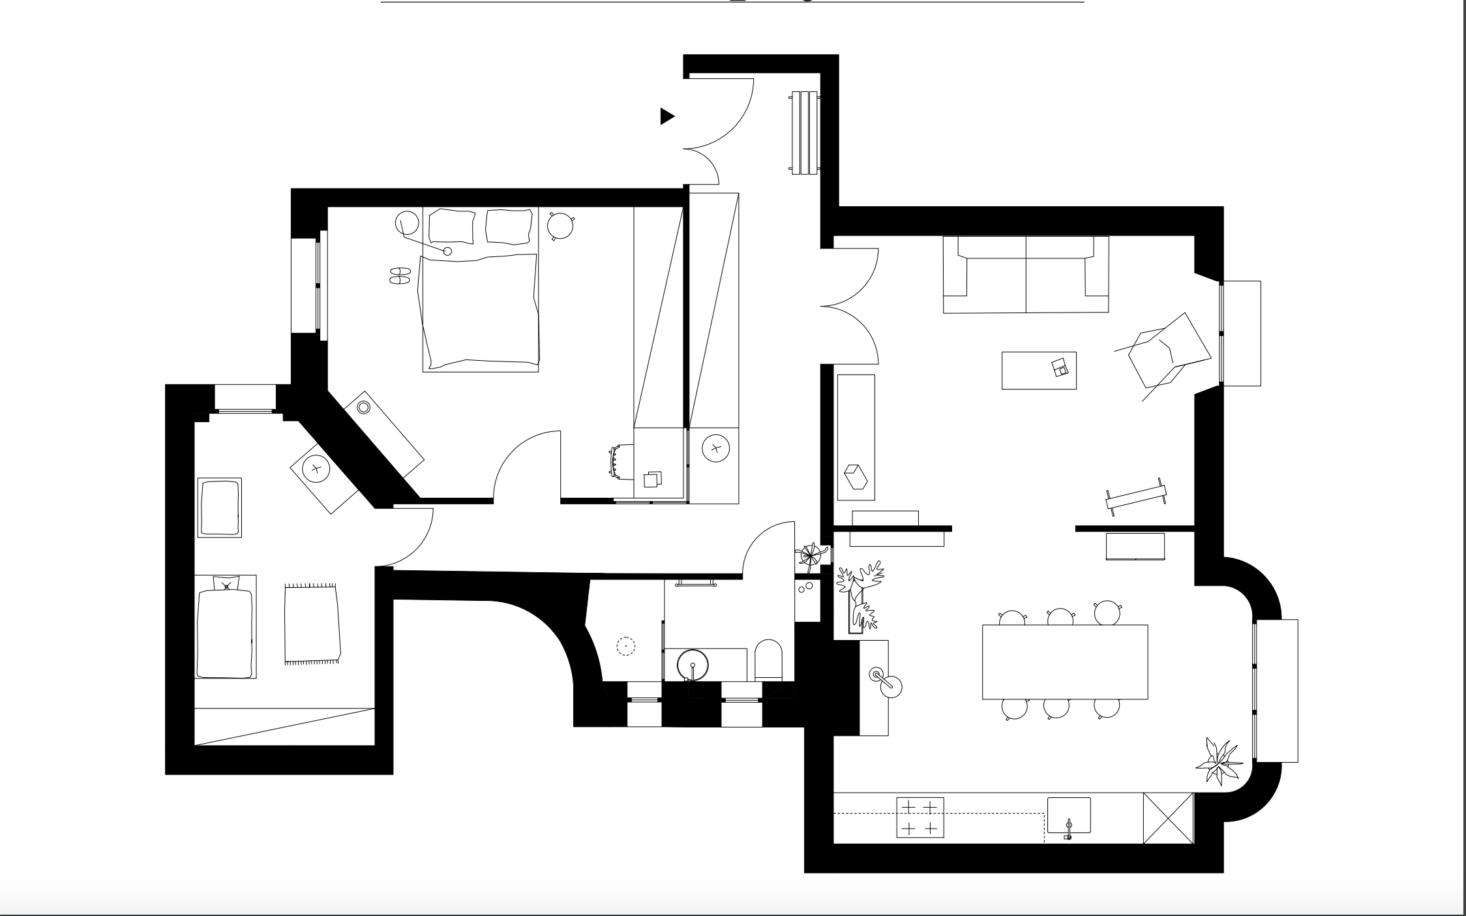 The new floor plan—775 square feet in total—has a more logical flow, with the living room and kitchen/dining area linked and the bedrooms side by side in the back. The architects gained more space for the tiny bath by reducing the hallway a bit and sealing the door between it and the dining room. The construction took three and a half months.